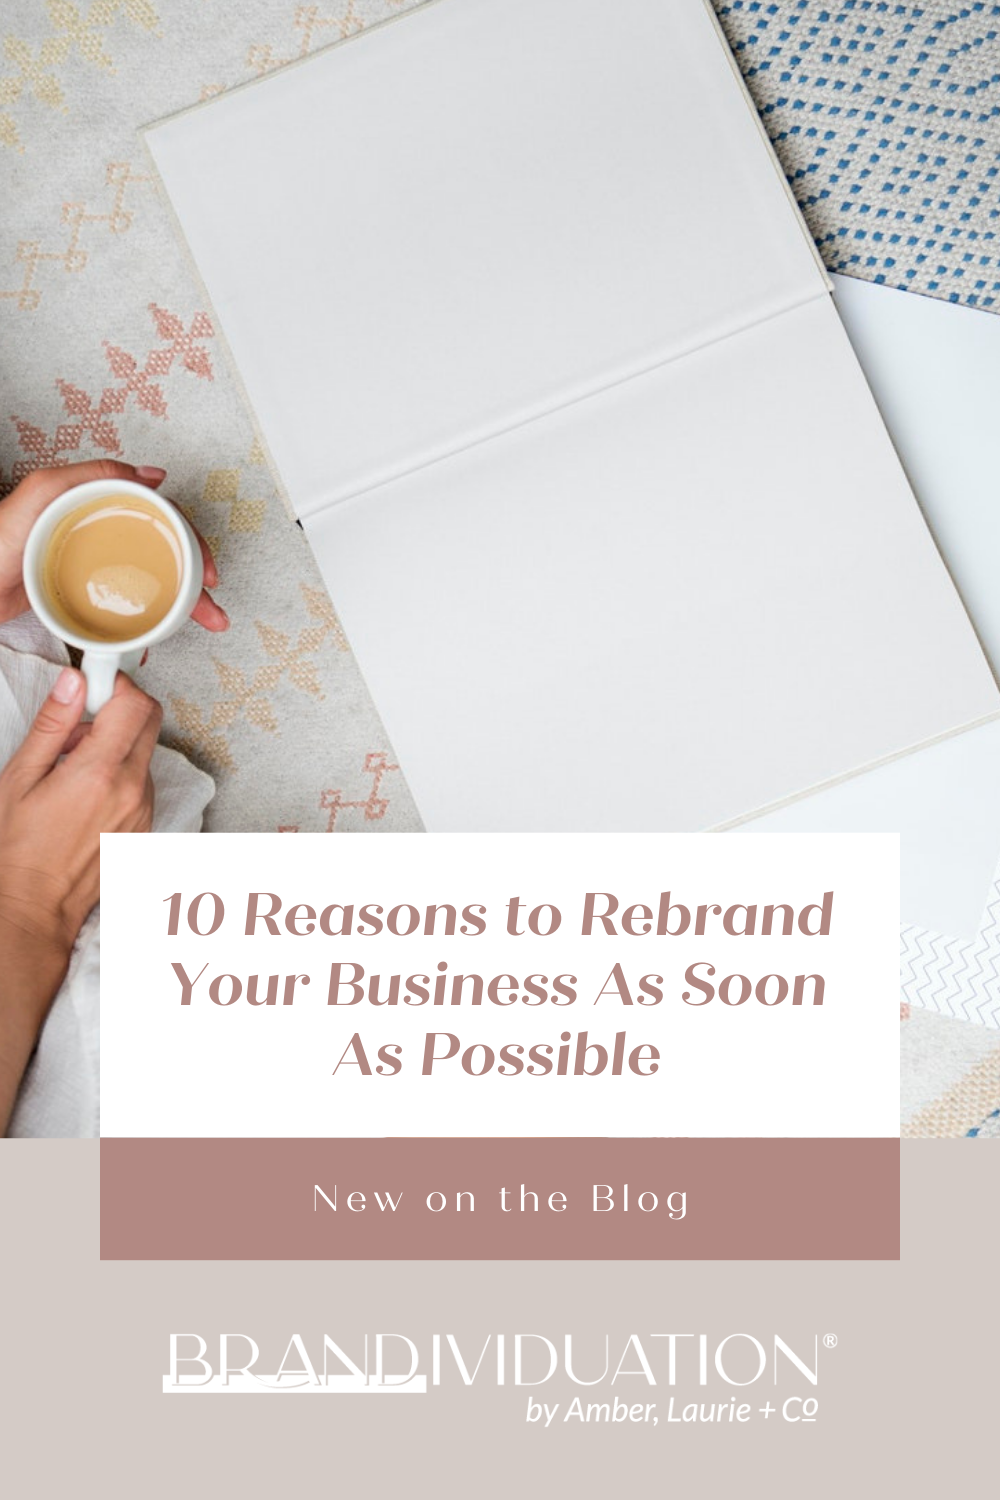 10 Reasons to Rebrand Your Business As Soon As Possible